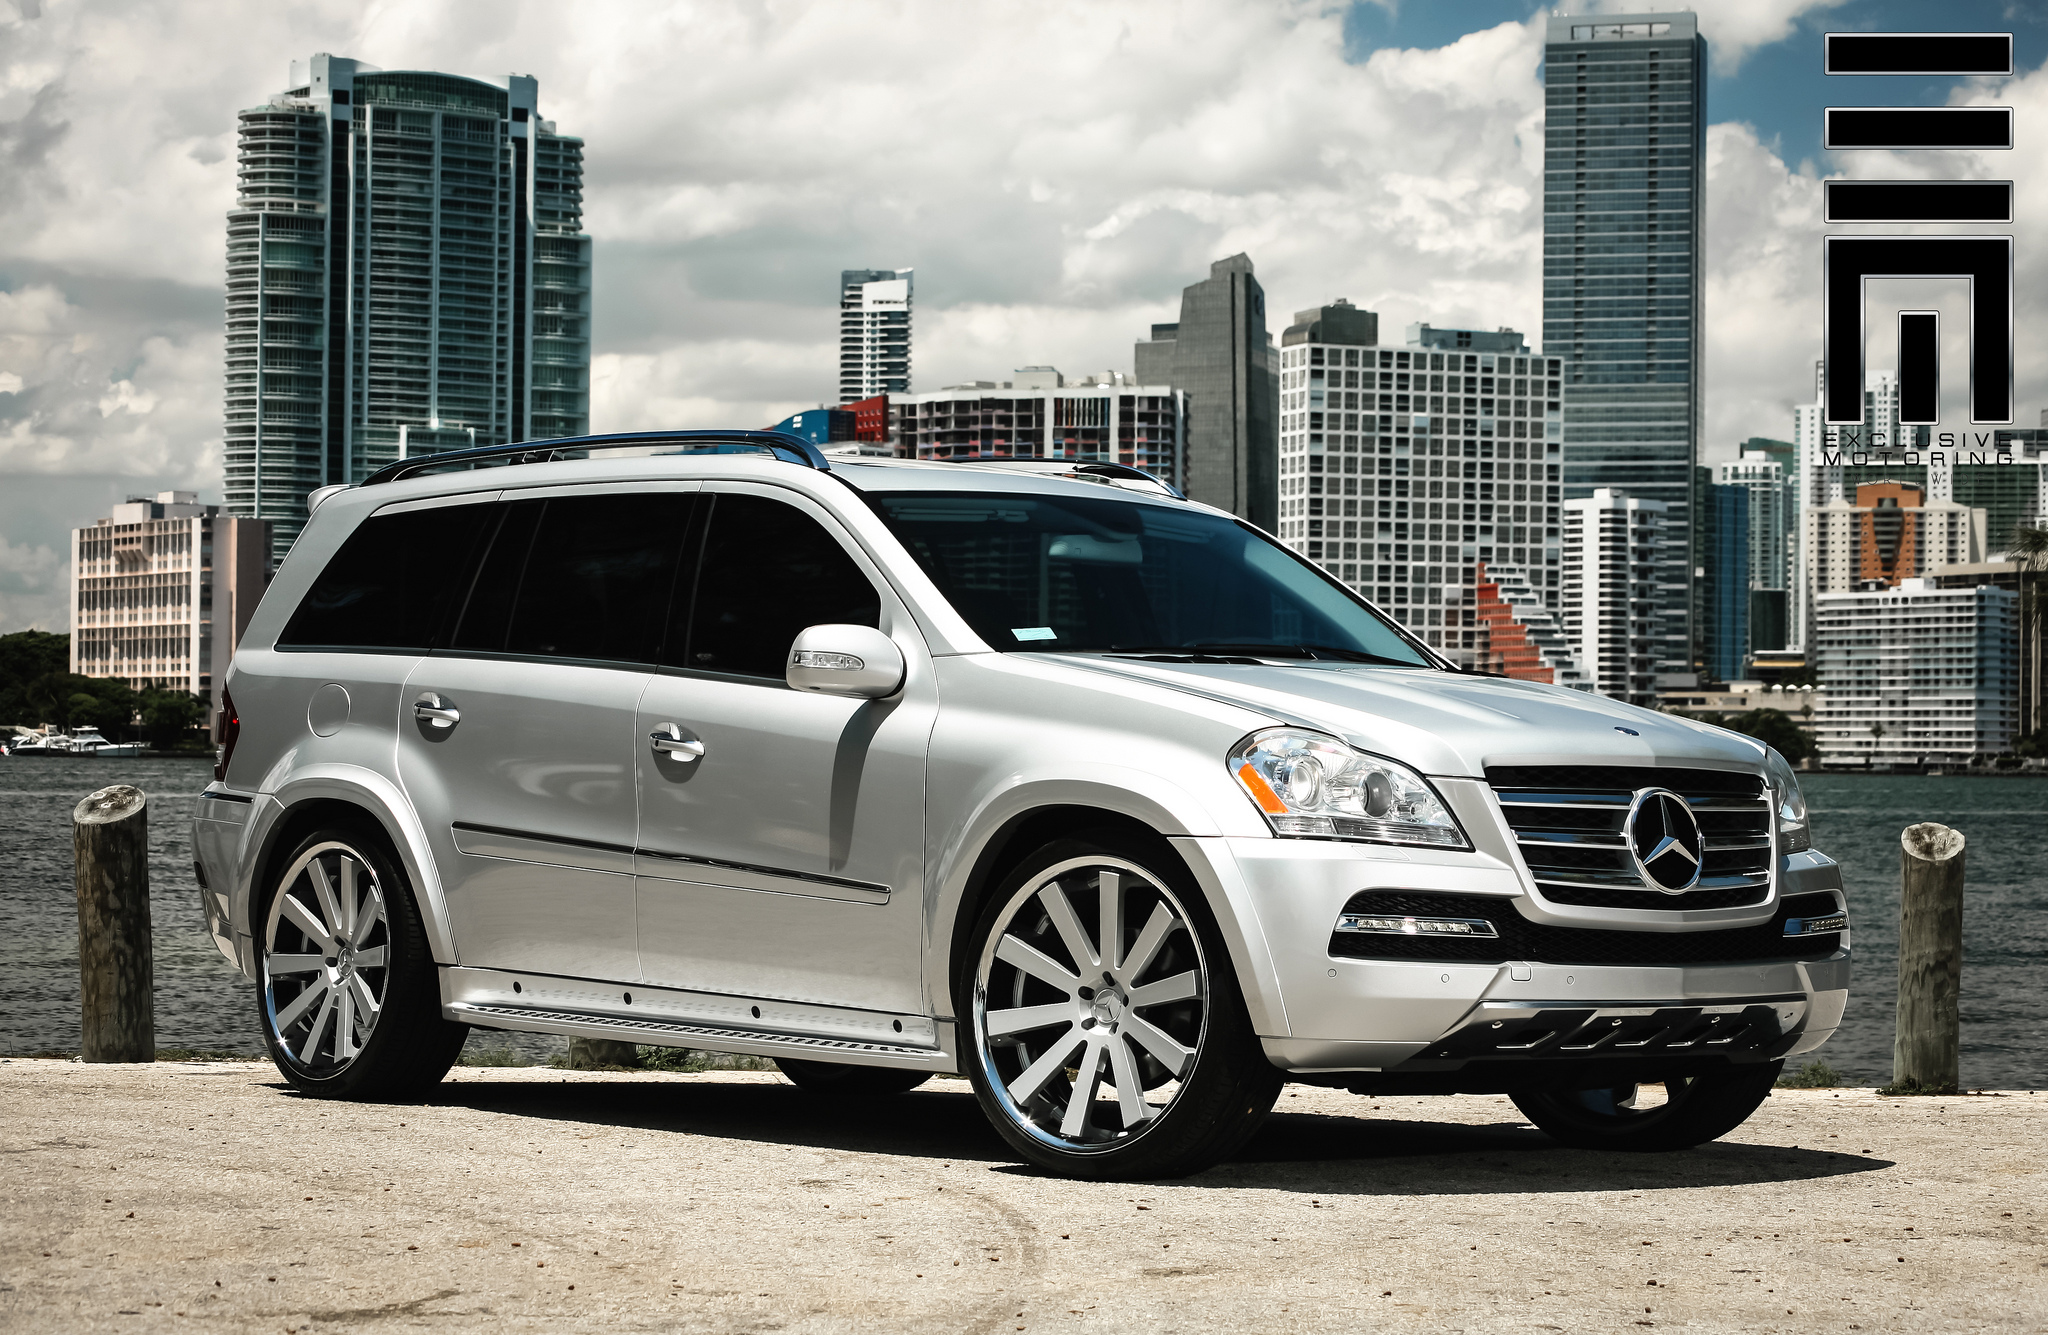 Gianelle Santo 2SS Silver on Mercedes Benz GL500